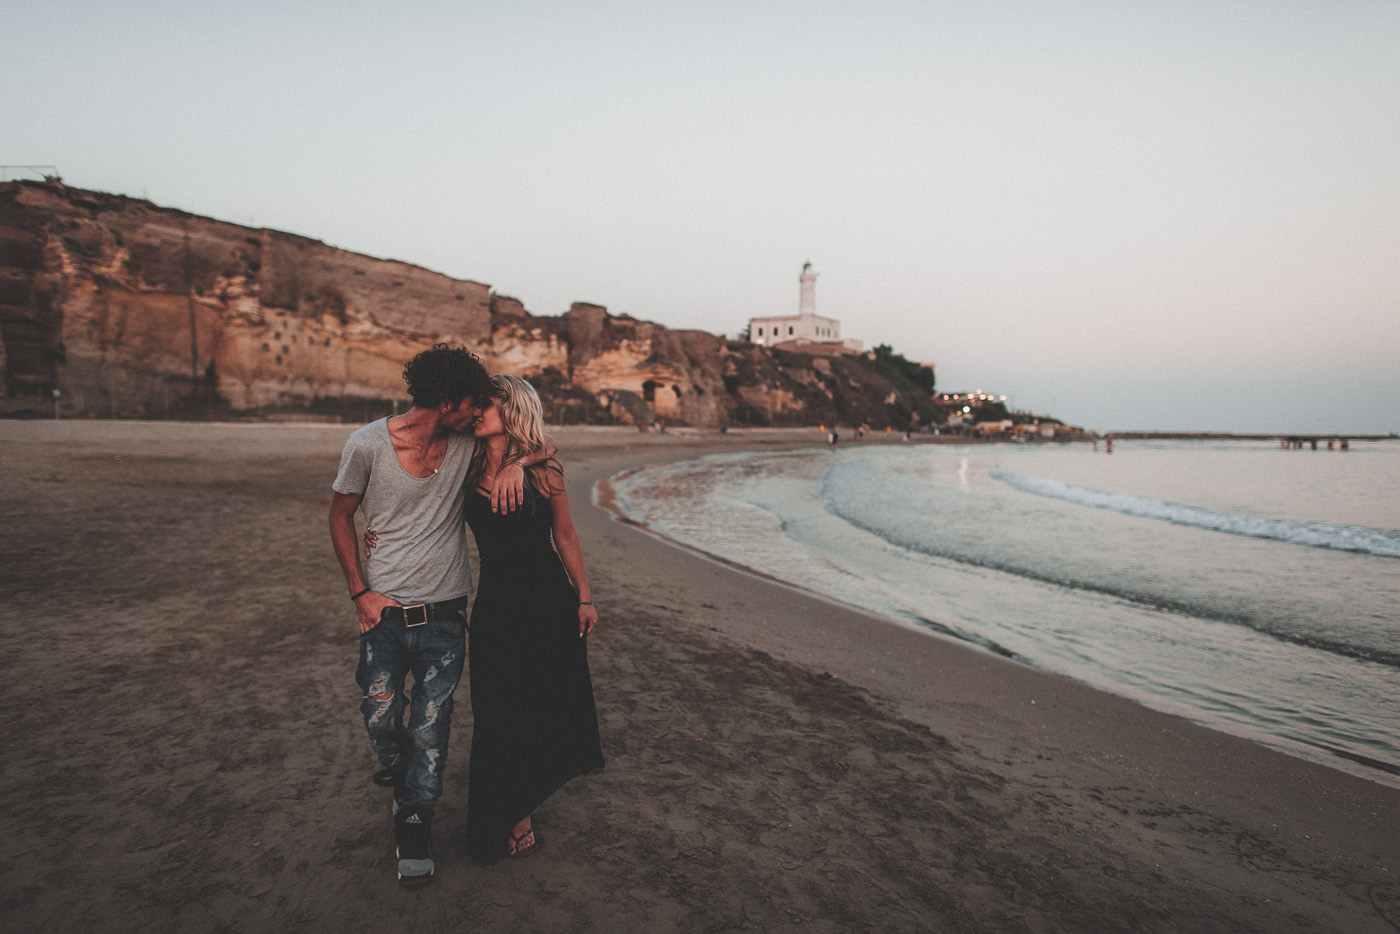 Destination-wedding-photographer-for-couples-anzio-rome-italy-italia-50